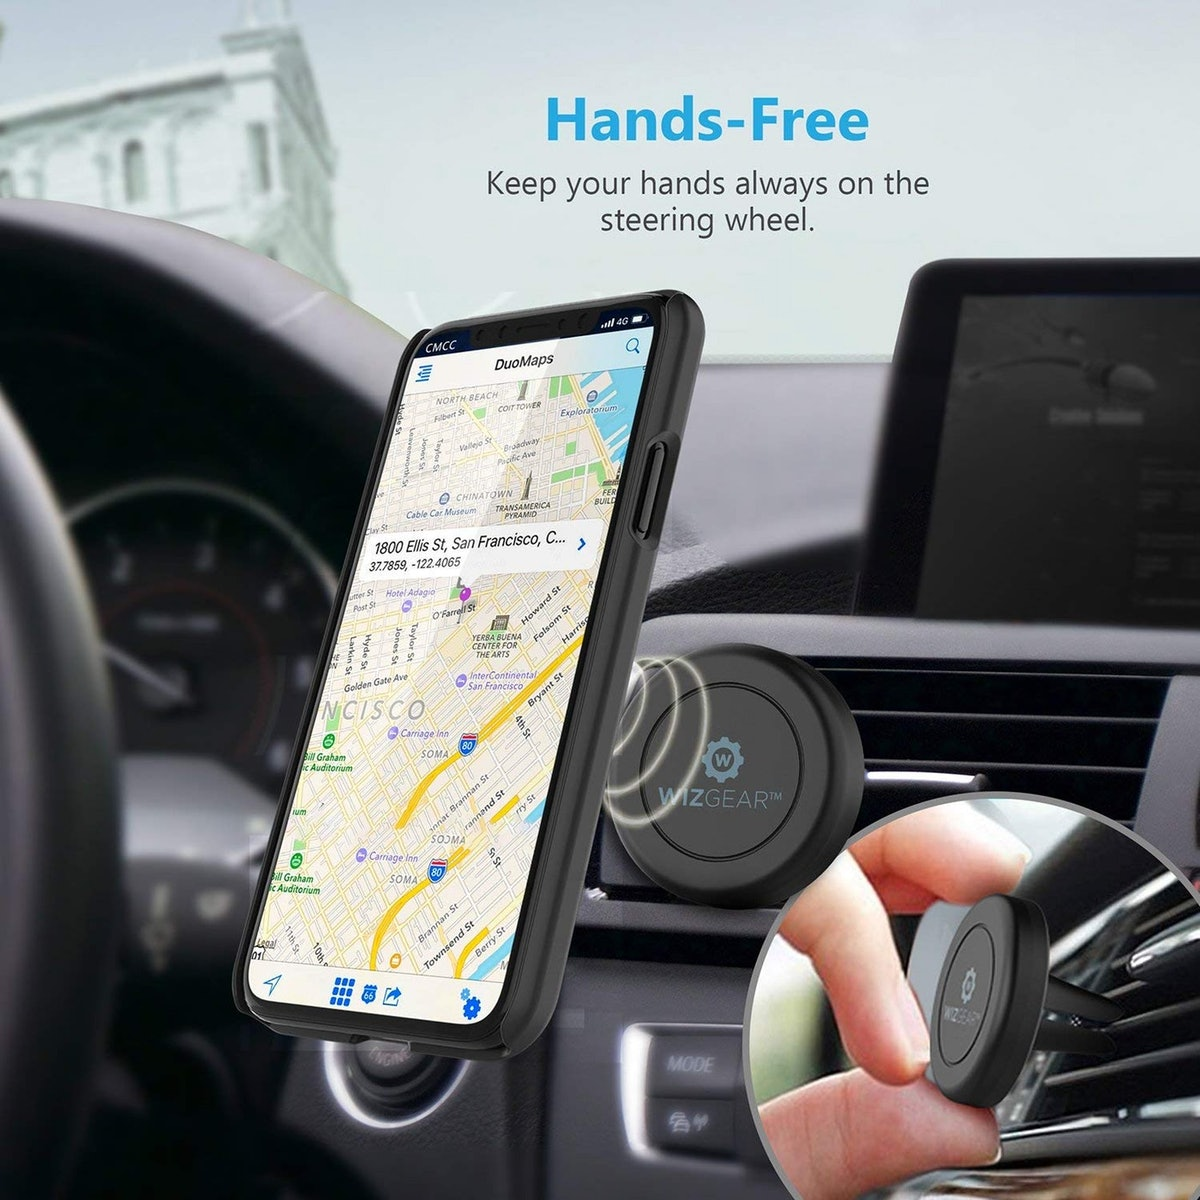 WizGear Magnetic Car Phone Mounts (2-Pack)